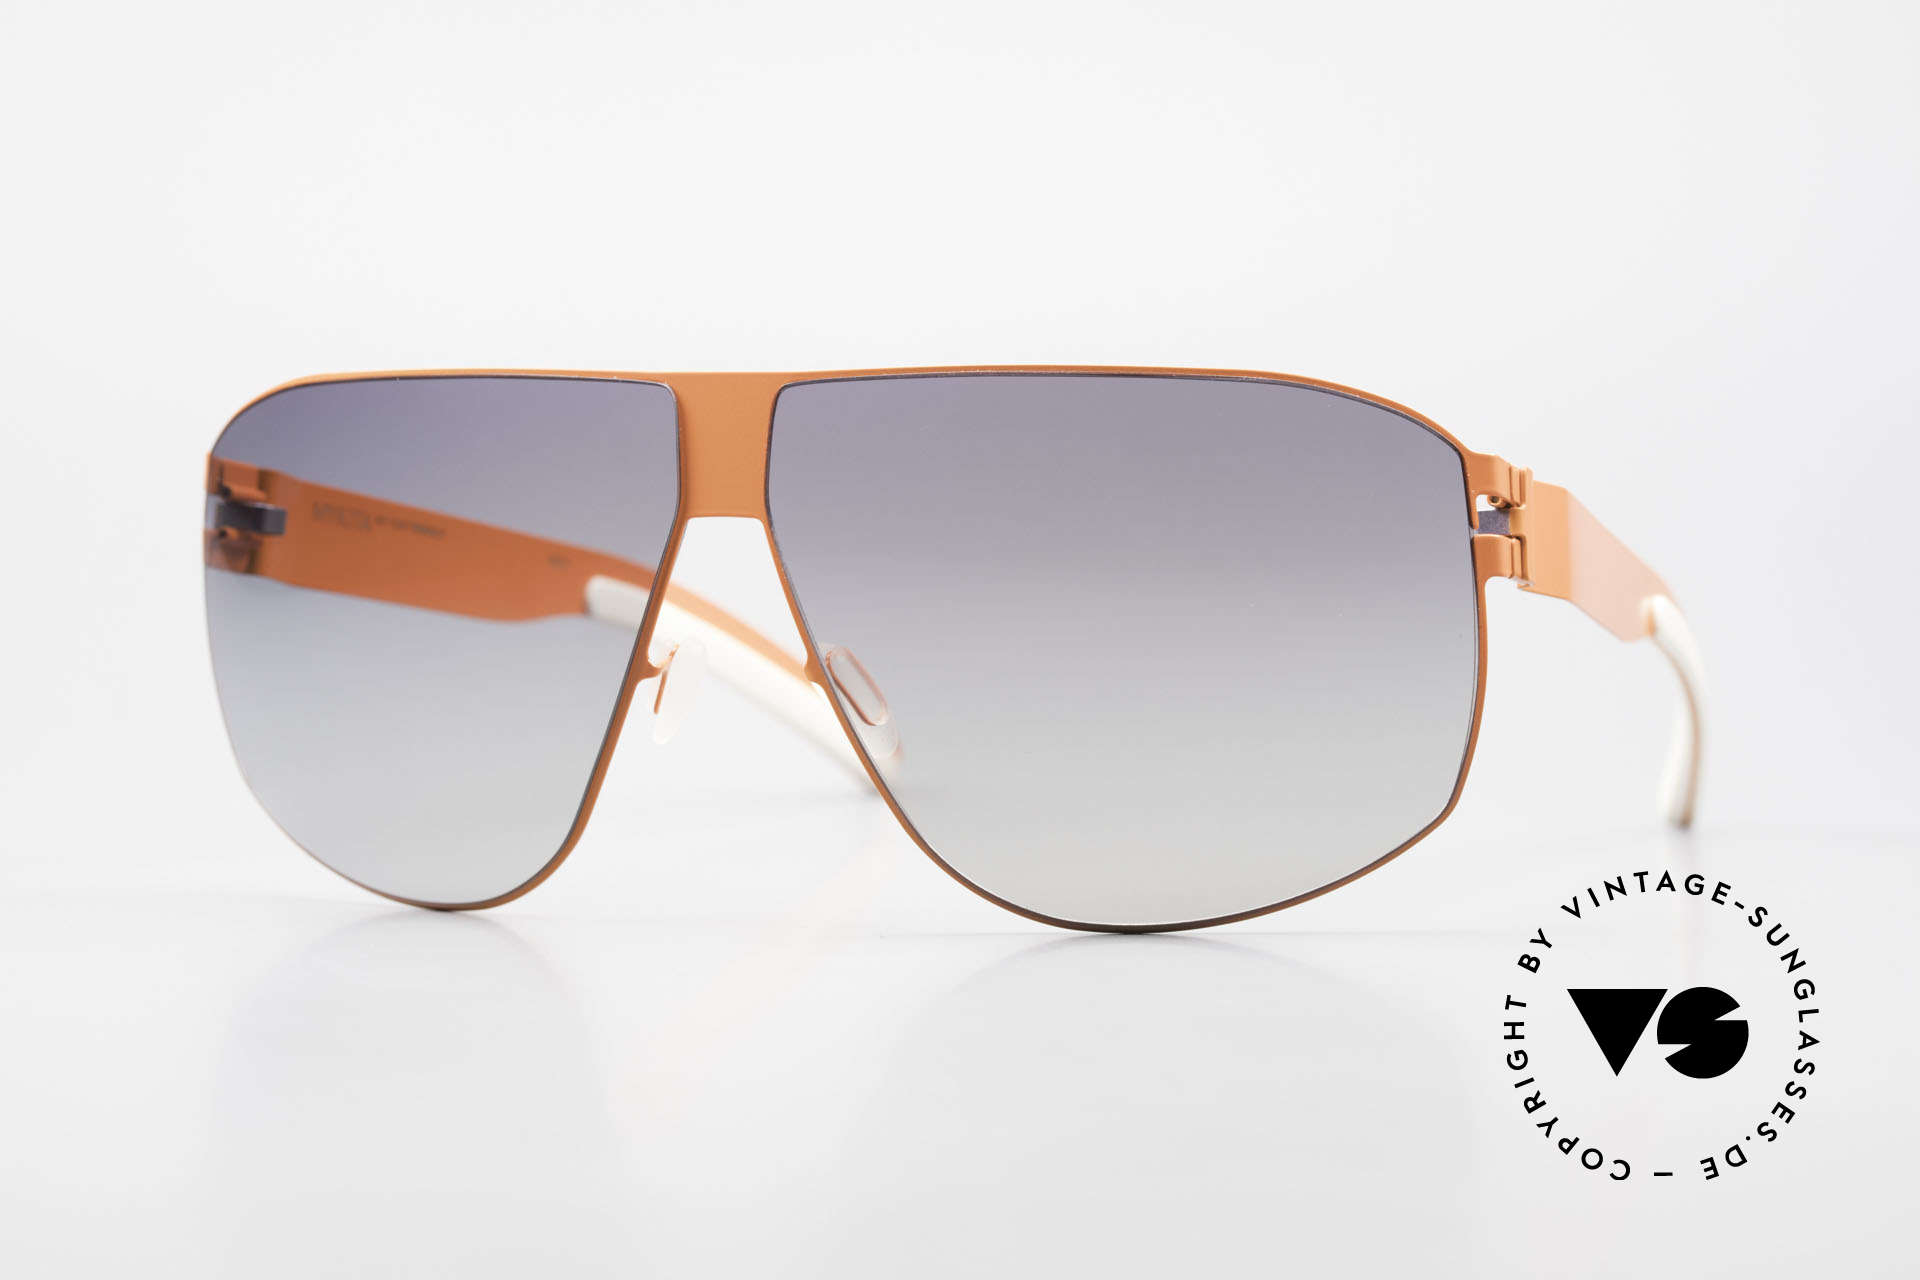 Mykita Terrence Mykita Shades Neonorange, original VINTAGE MYKITA men's sunglasses from 2011, Made for Men